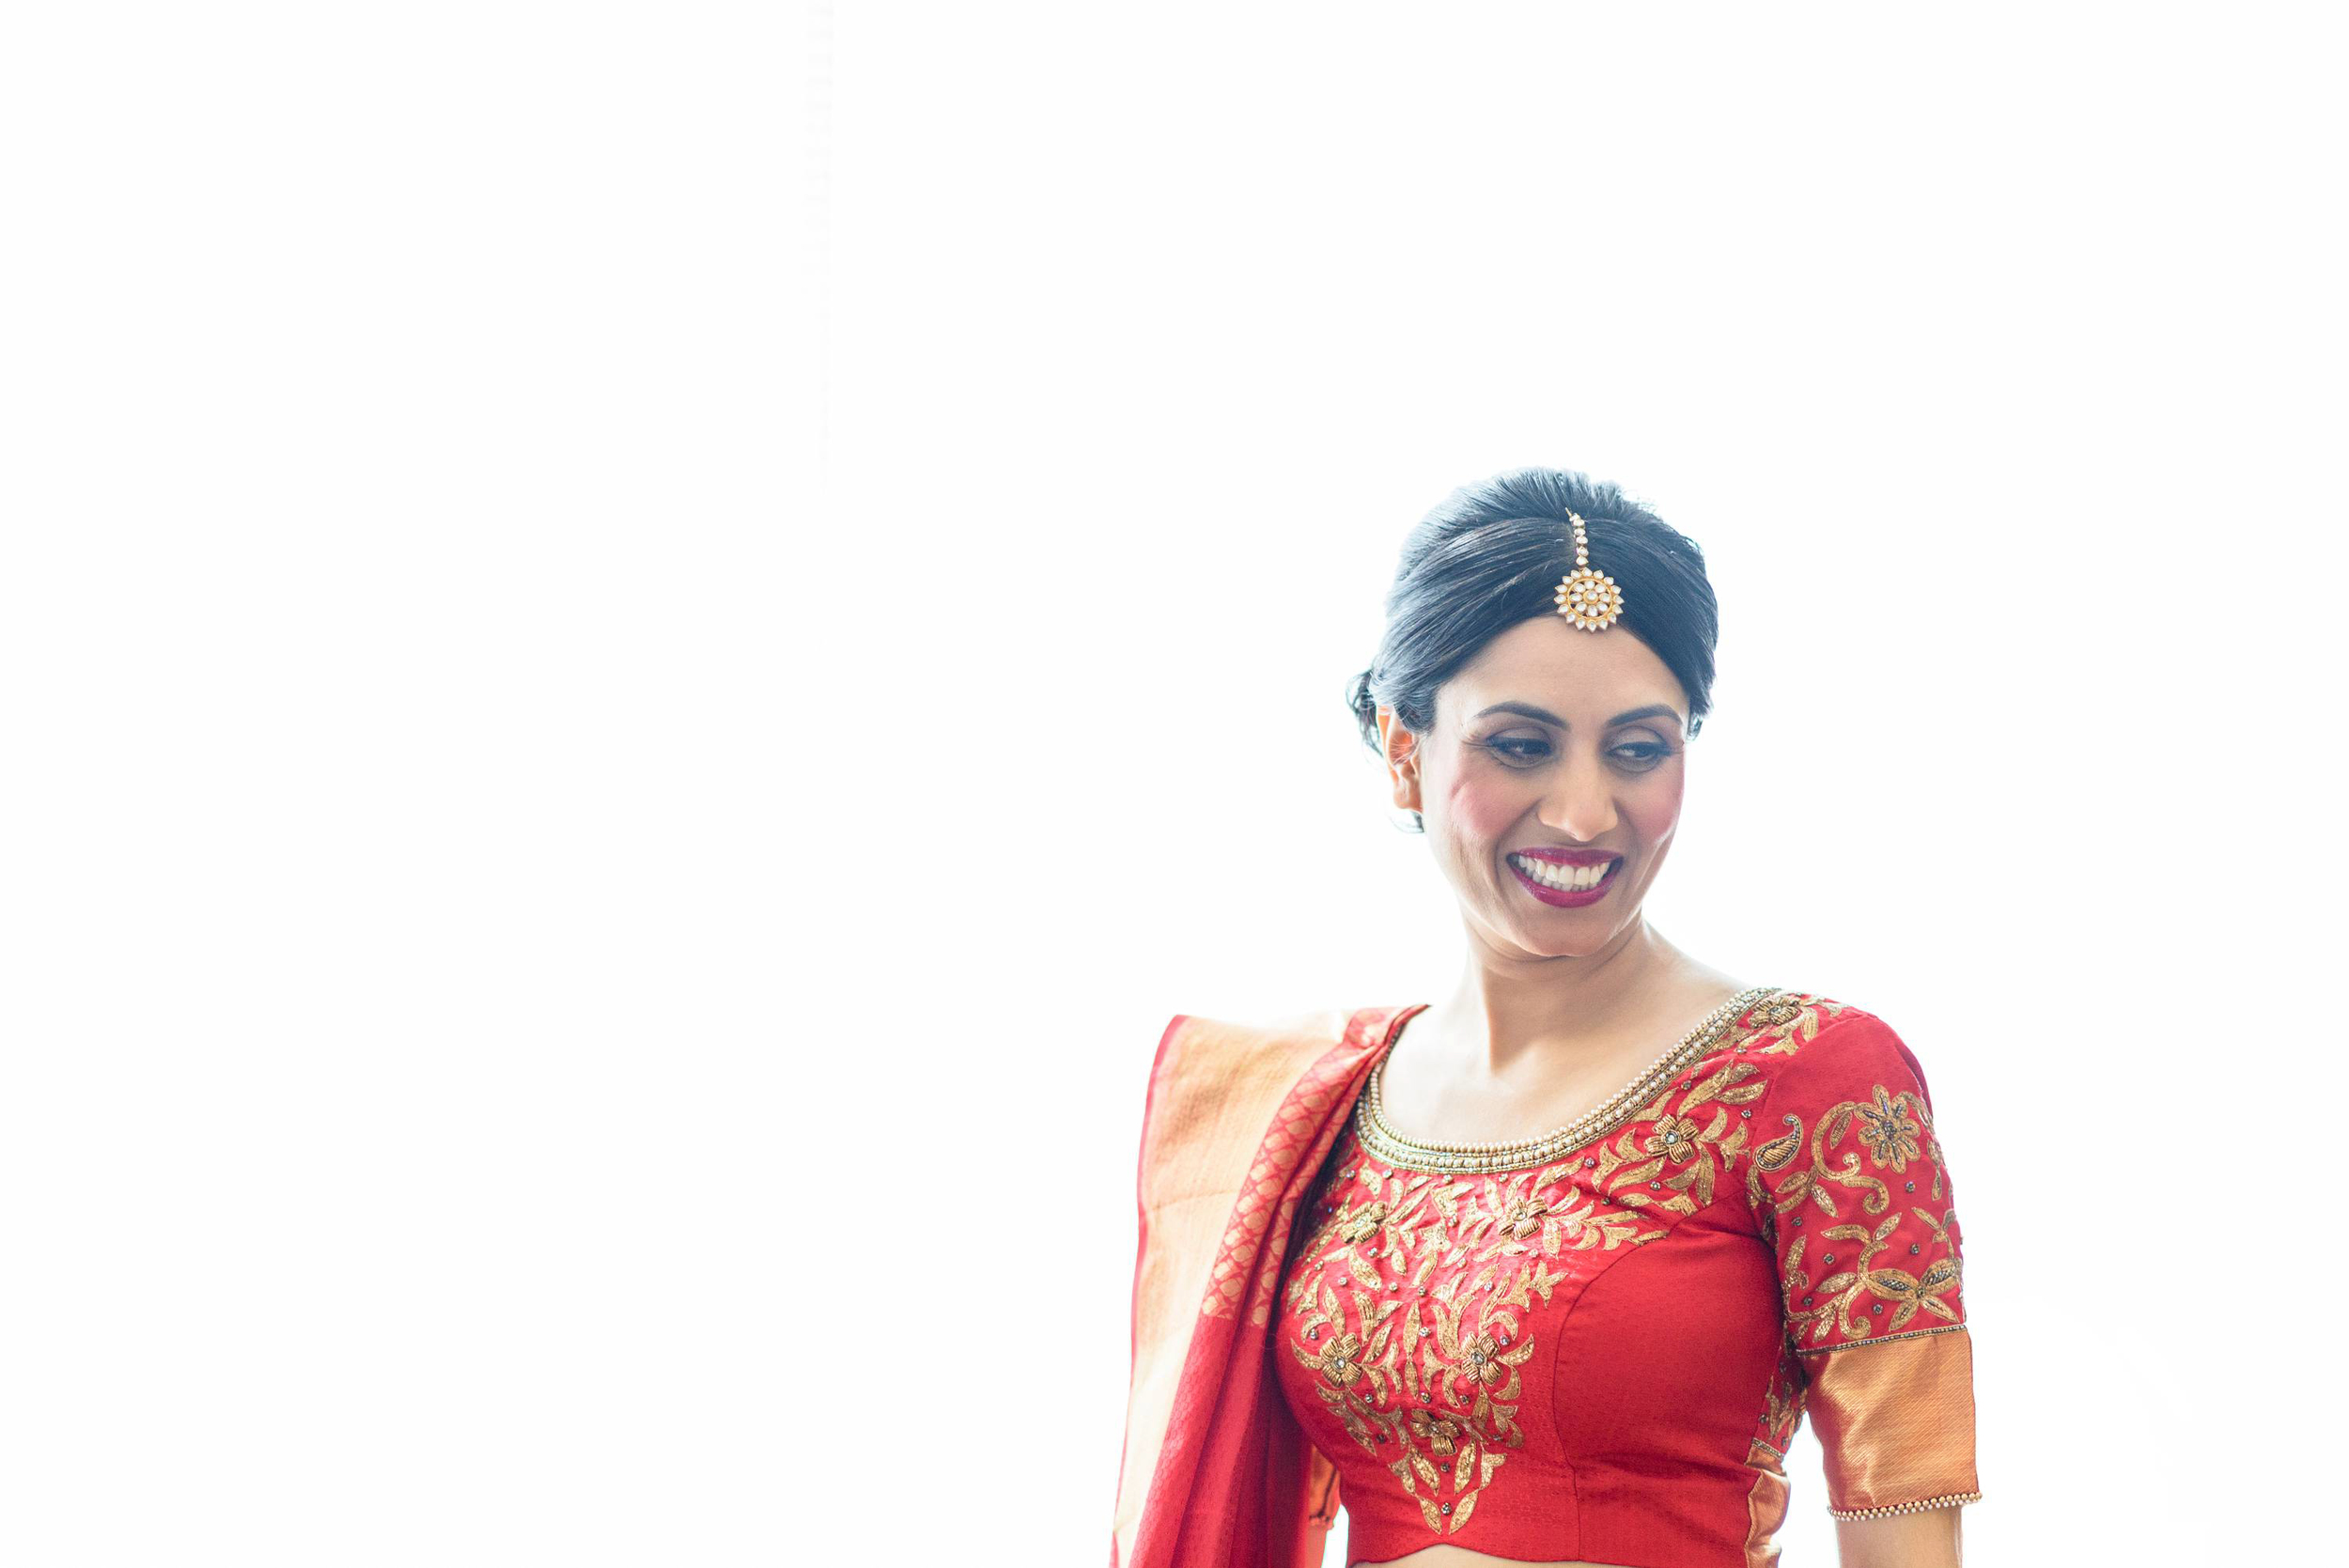 our bride chose a beautiful kanchipuram silk saree as her bridal dress for her traditional indian wedding along with hand stitched blouse